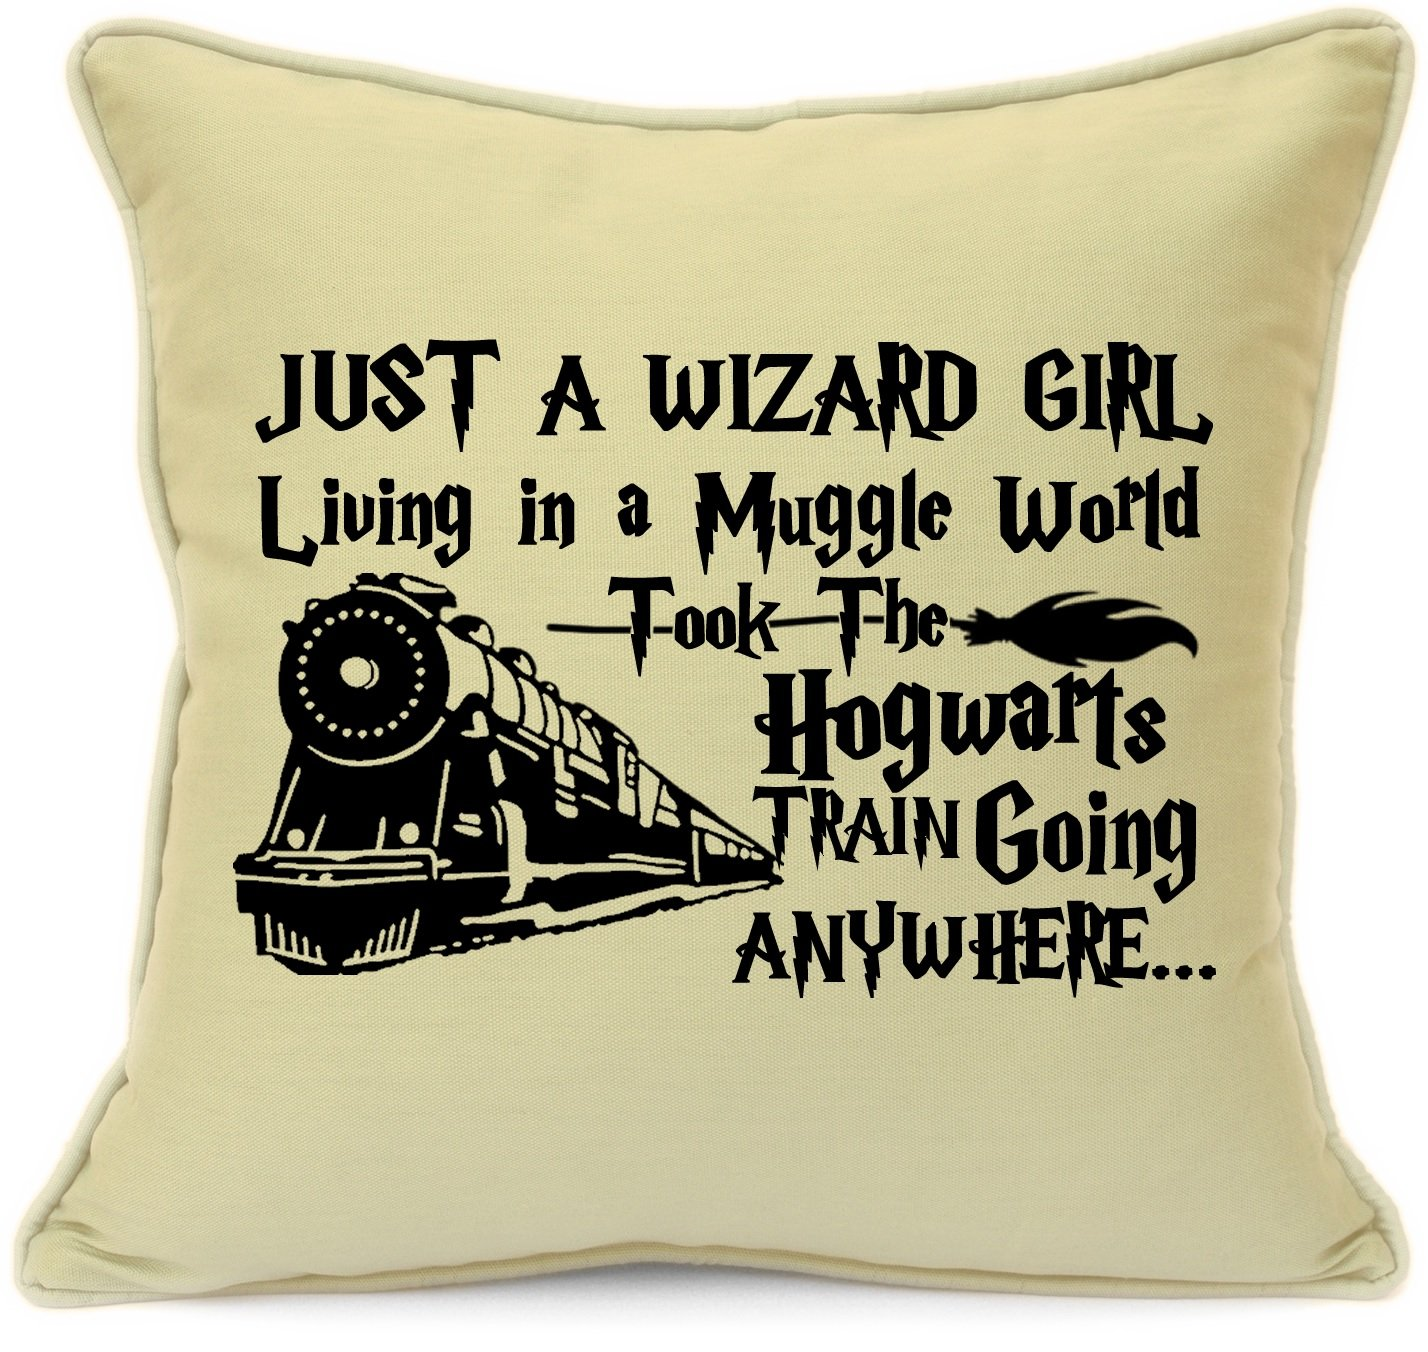 Harry Potter Presents Gifts For Him Her Girls Boys Teens Birthday, Christmas, Xmas Wizard Girl Living In A Muggle World Cushion Cover 18 Inch 45 Cm Elf Dobby Hogwarts Dumbledore Home Decor Imran's Gift Shop